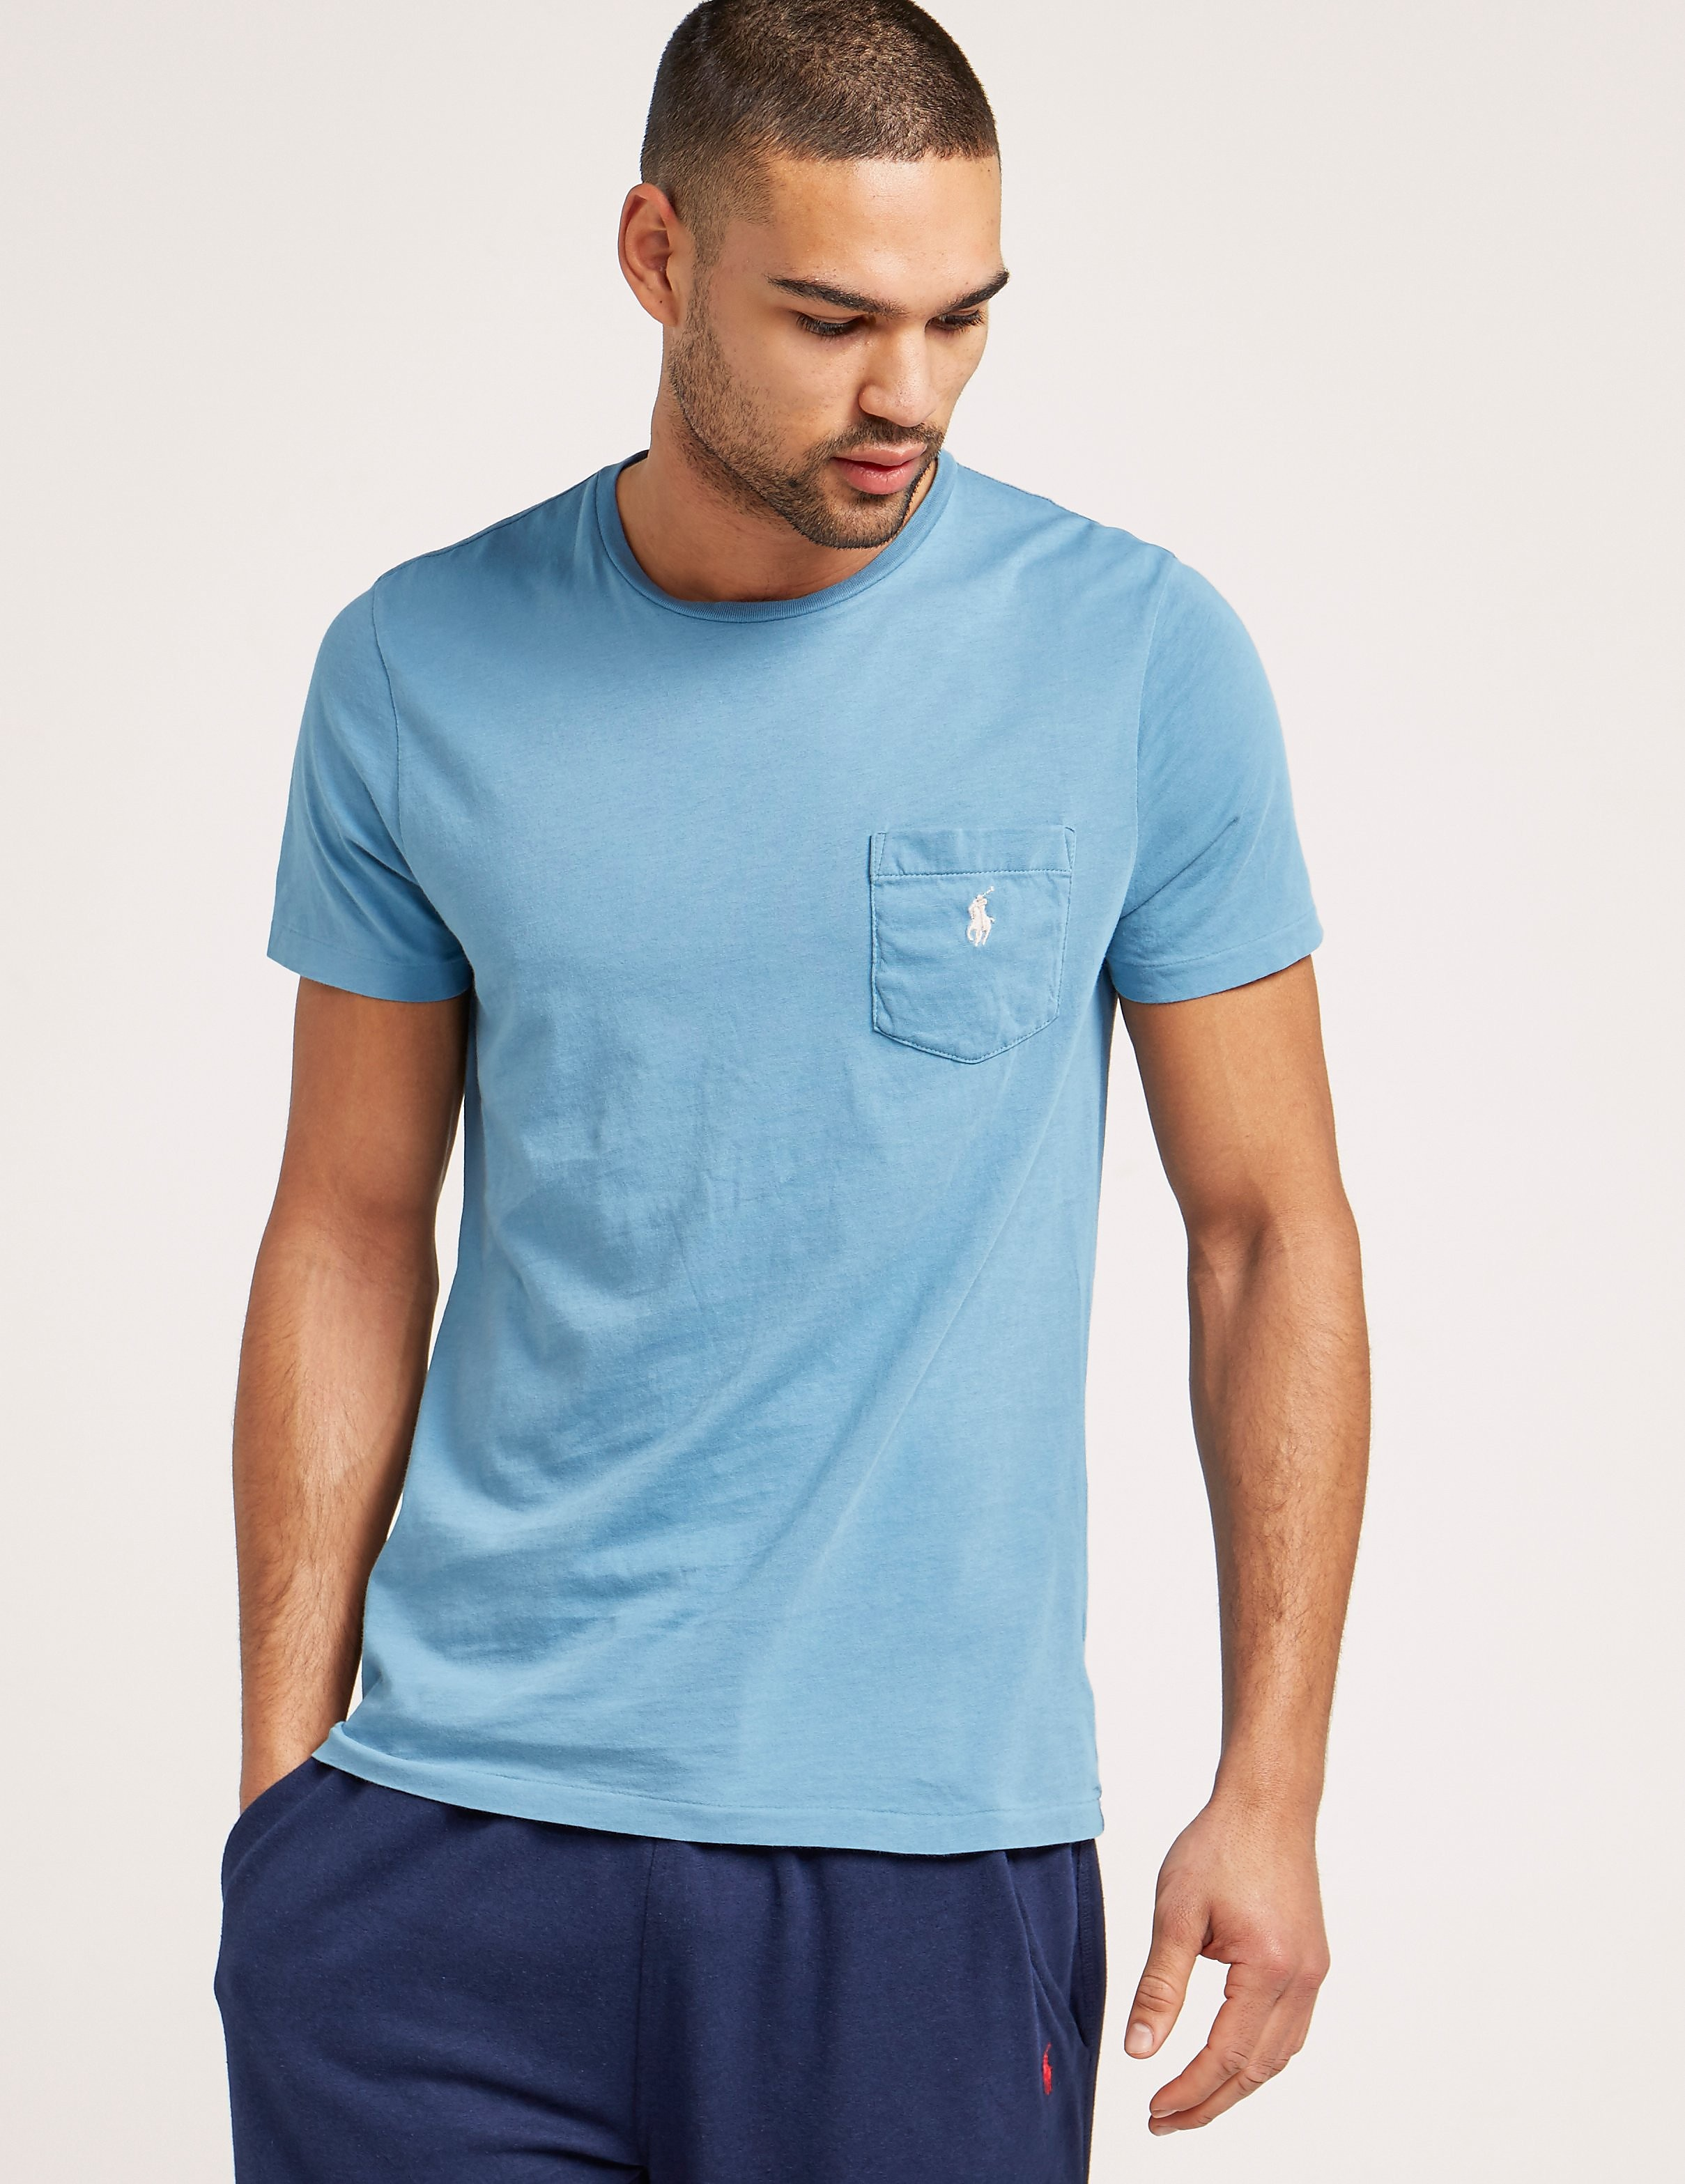 Polo Ralph Lauren Short Sleeve Pocket T-Shirt